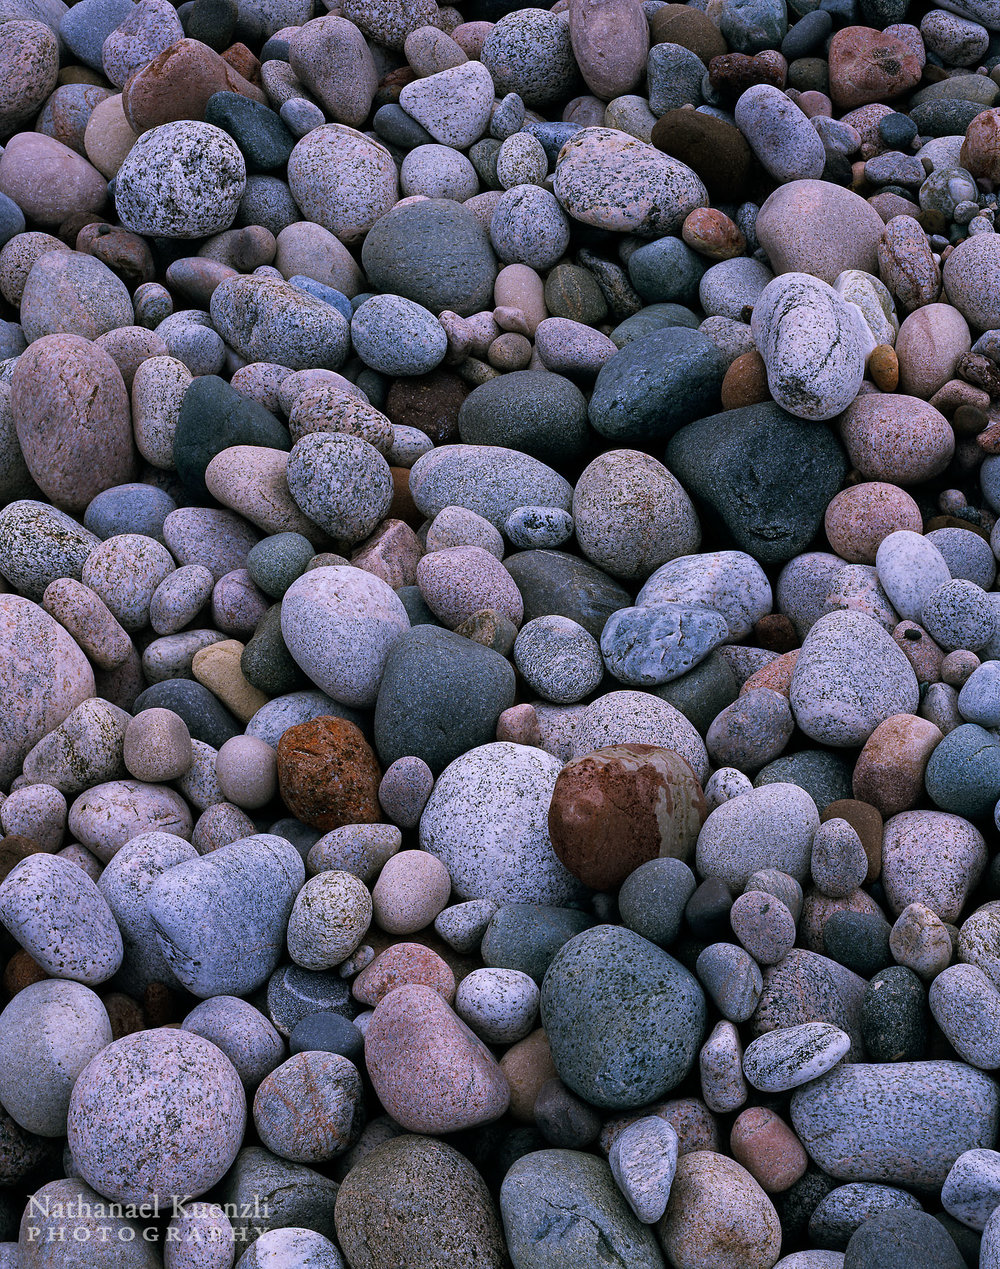 Beach Rocks, Pictured Rocks National Lakeshore, Michigan, May 2003